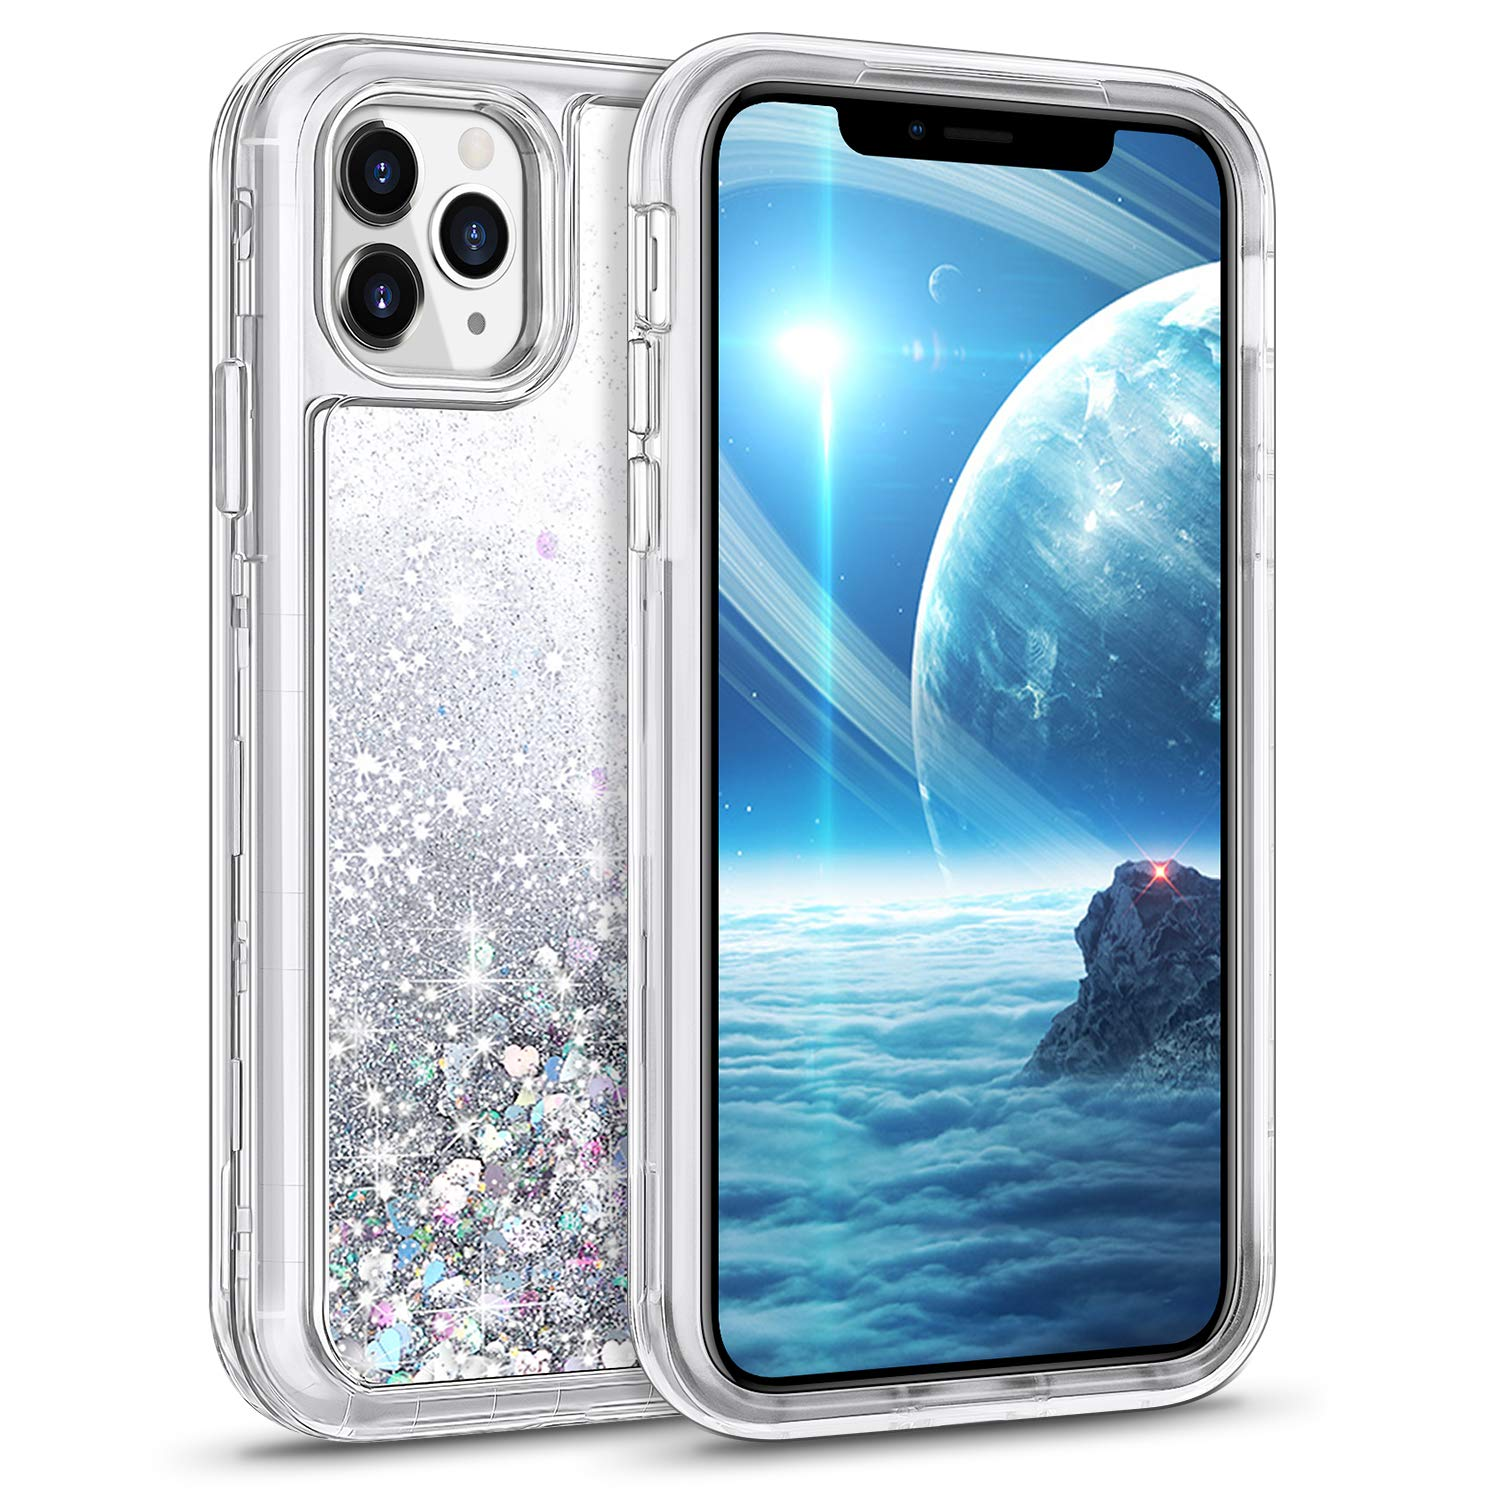 WESADN Case for iPhone 11 Pro Max Case Glitter Clear Cute Case Protective for Women Girls Shockproof Heavy Duty Hard Transparent Sparkle Cover TPU Bumper for iPhone 11 Pro Max,6.5 Inches,Silver